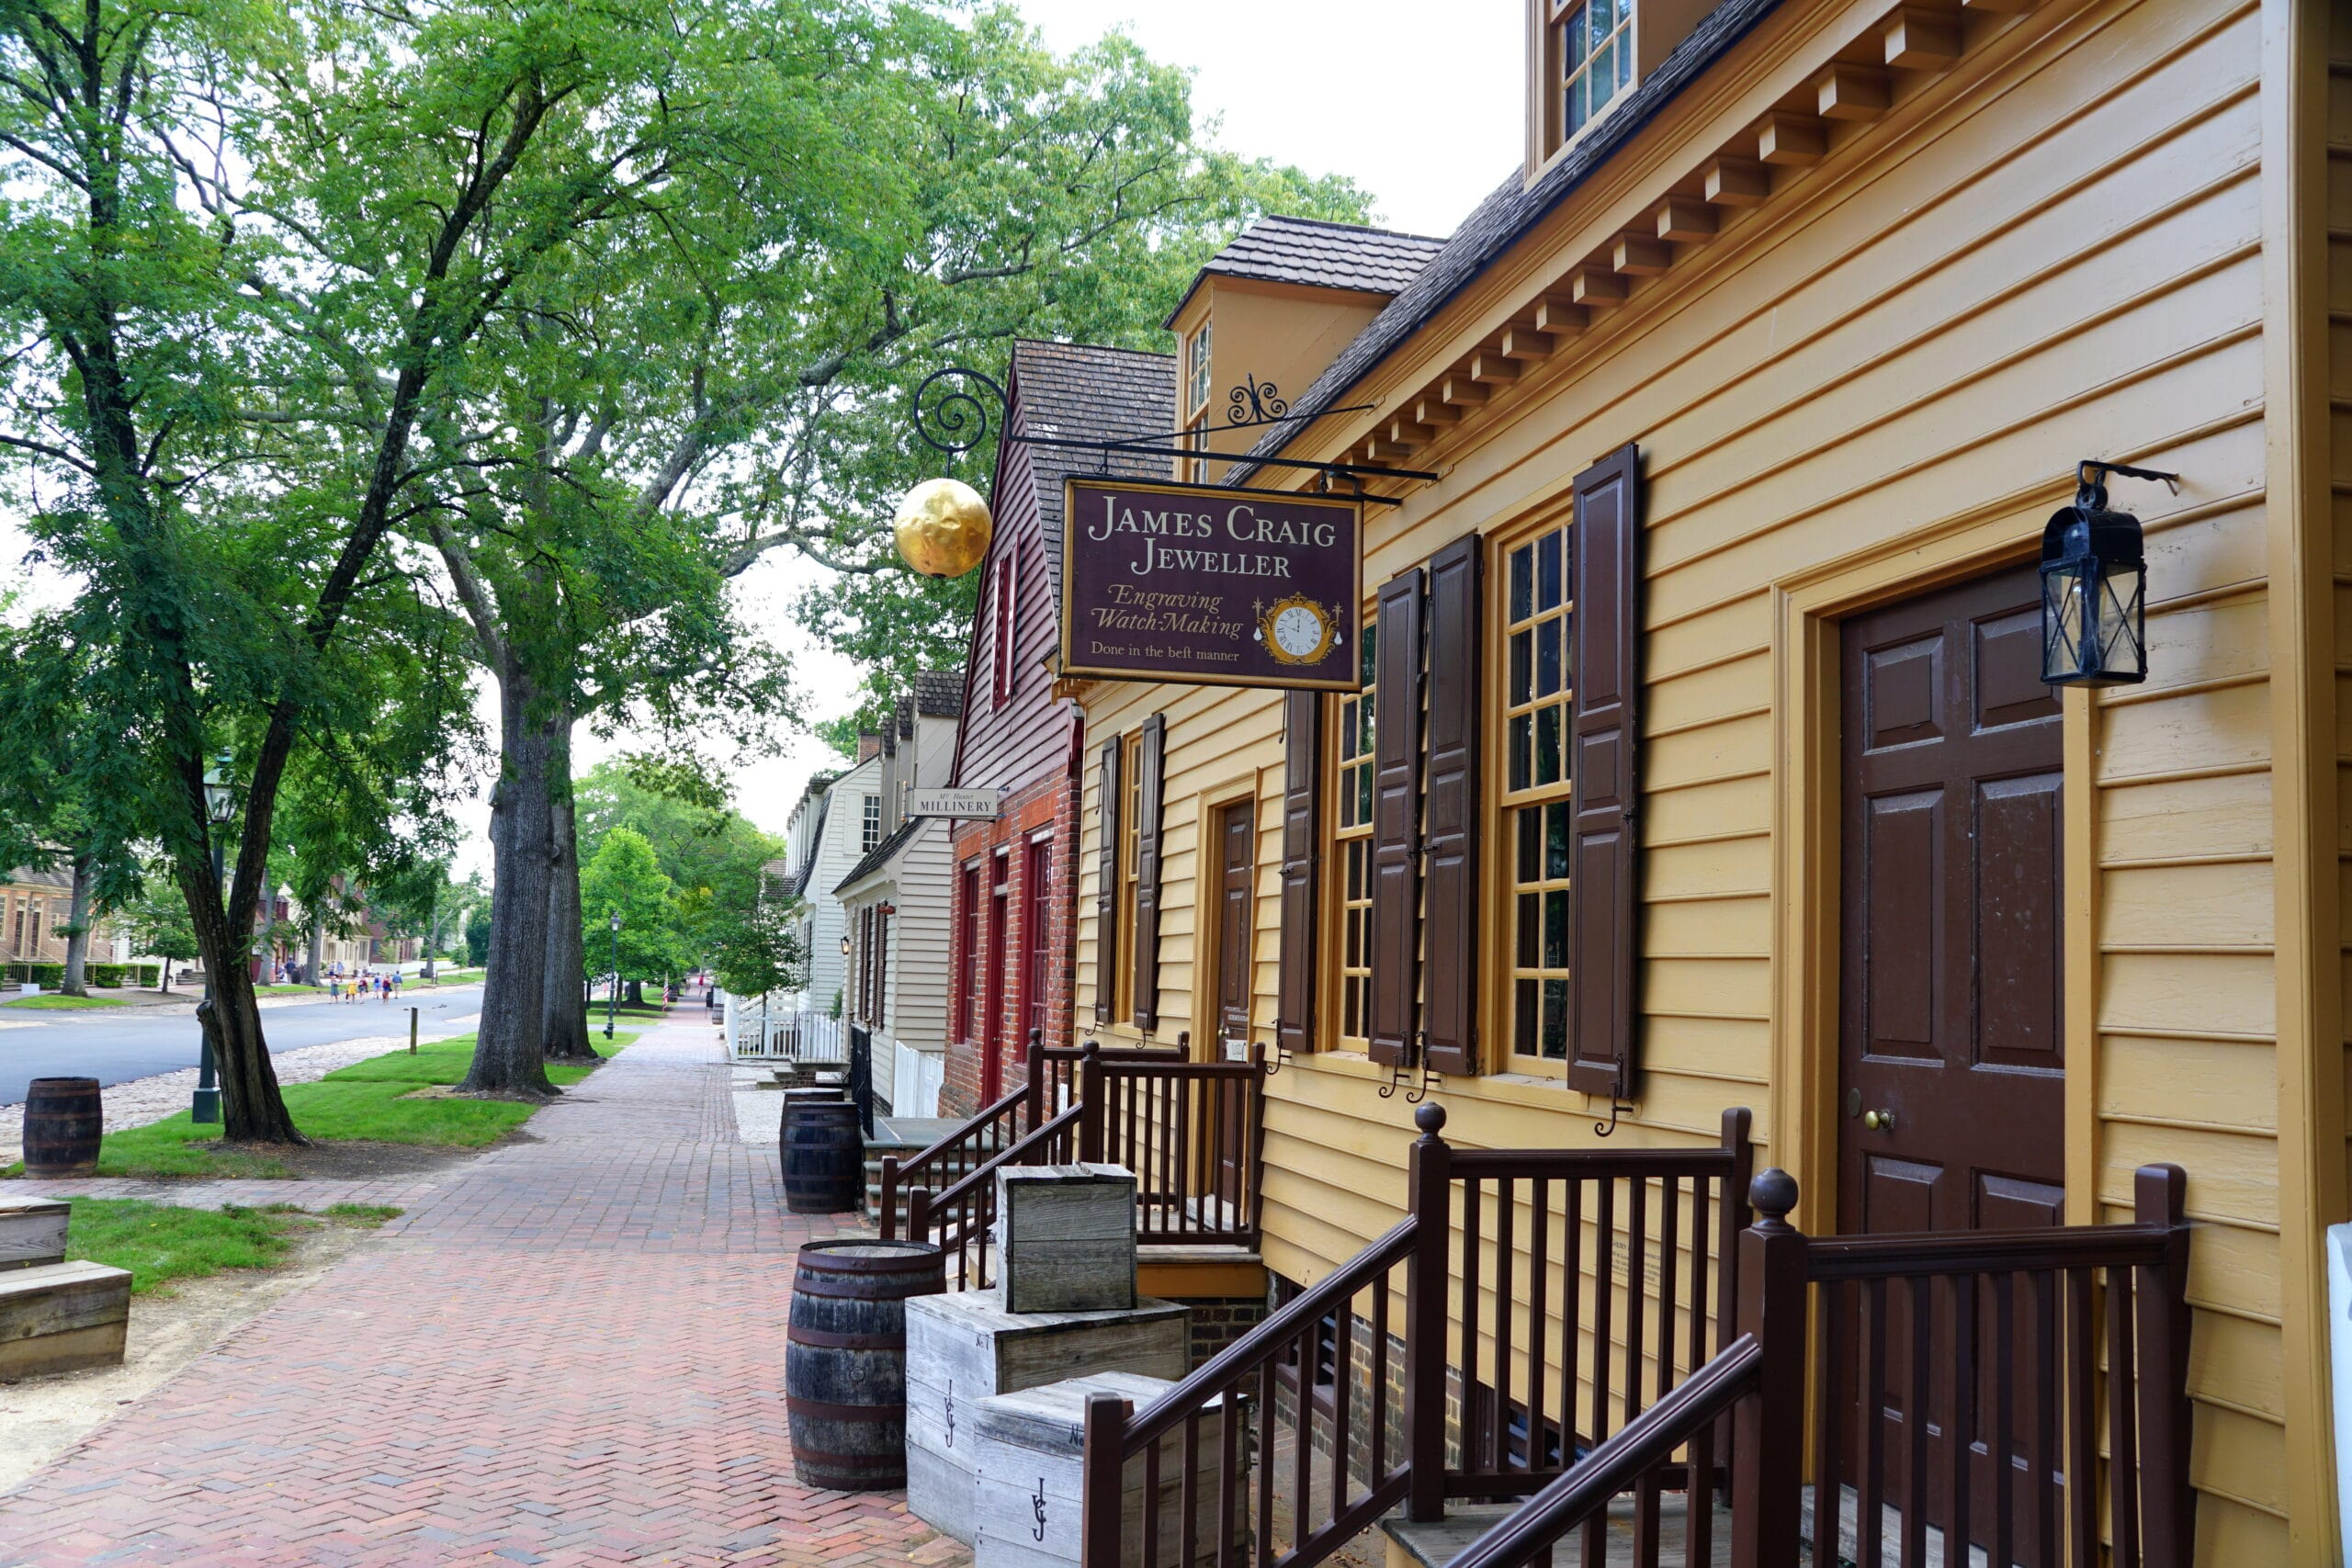 Williamsburg, Virginia, U.S.A - June 30, 2020 - The view of the street with beautiful colonial homes and stores